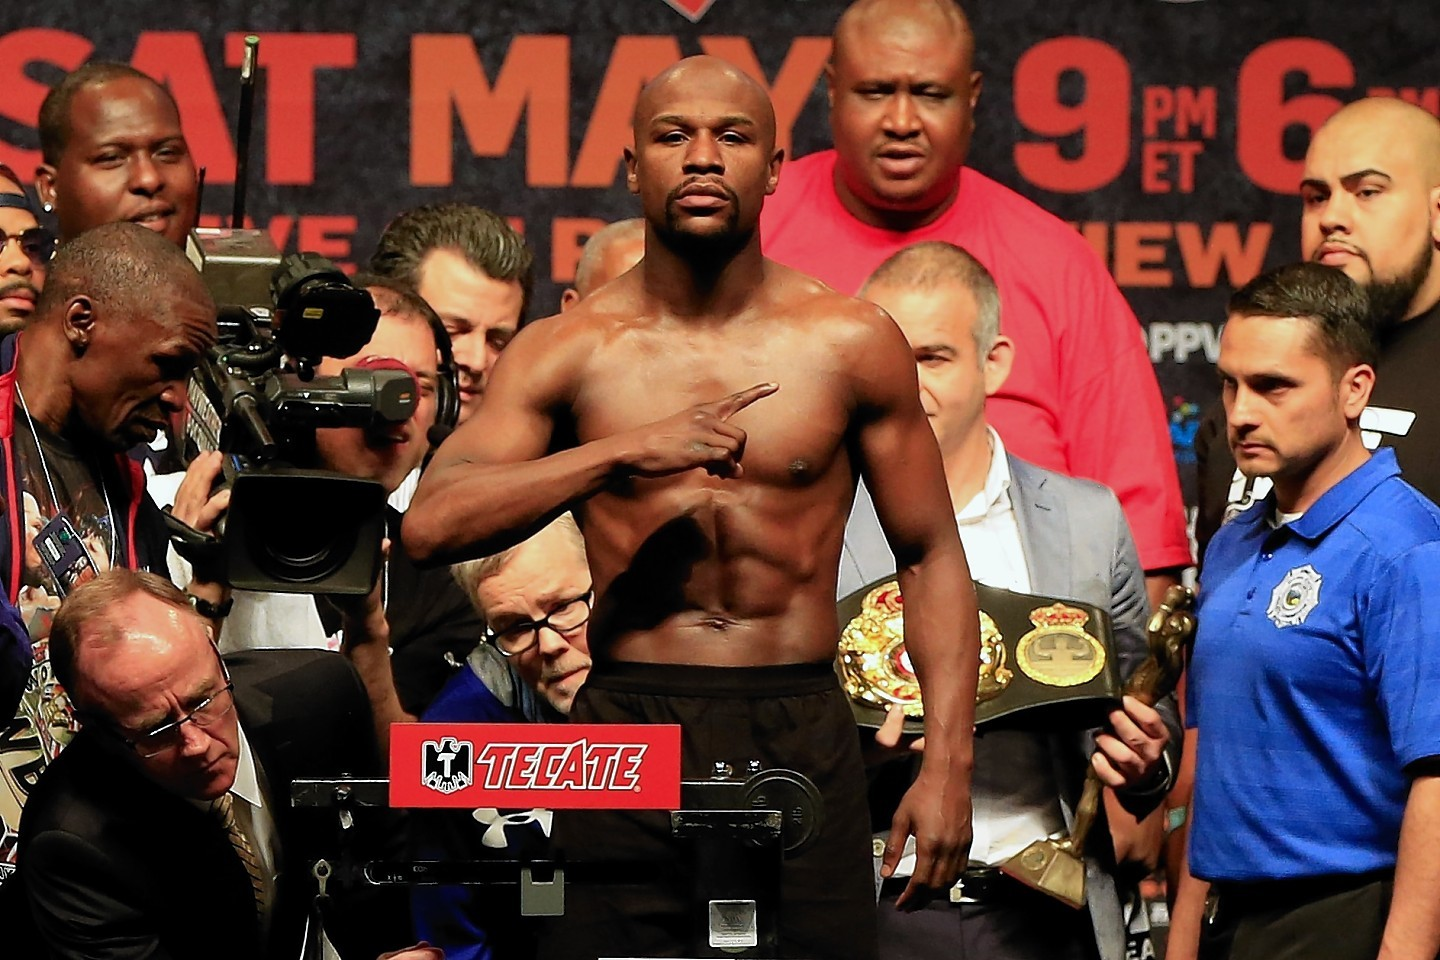 Floyd Mayweather Jr. poses on the scale during his official weigh-in